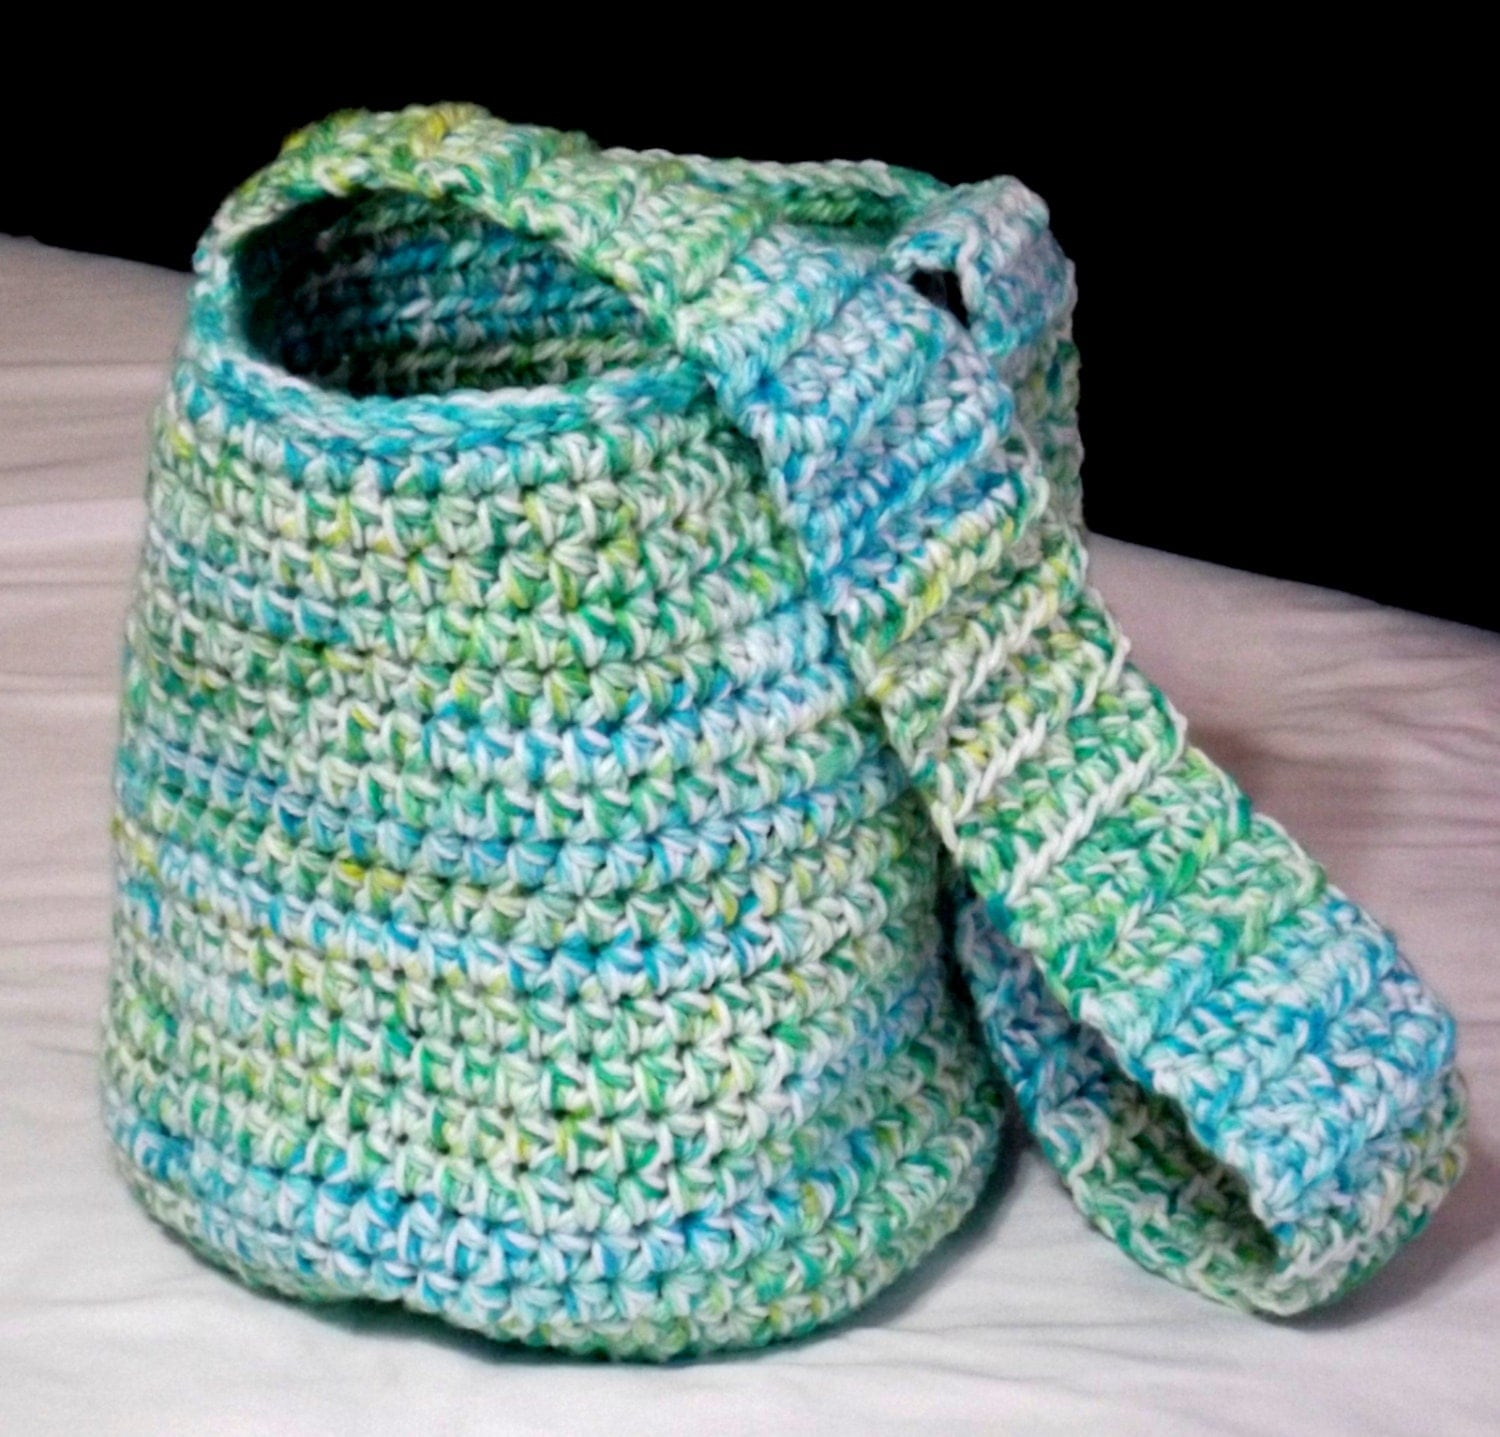 Crochet Back Bag : Crochet Over the Shoulder Bag by ORDINARYCROCHET on Etsy